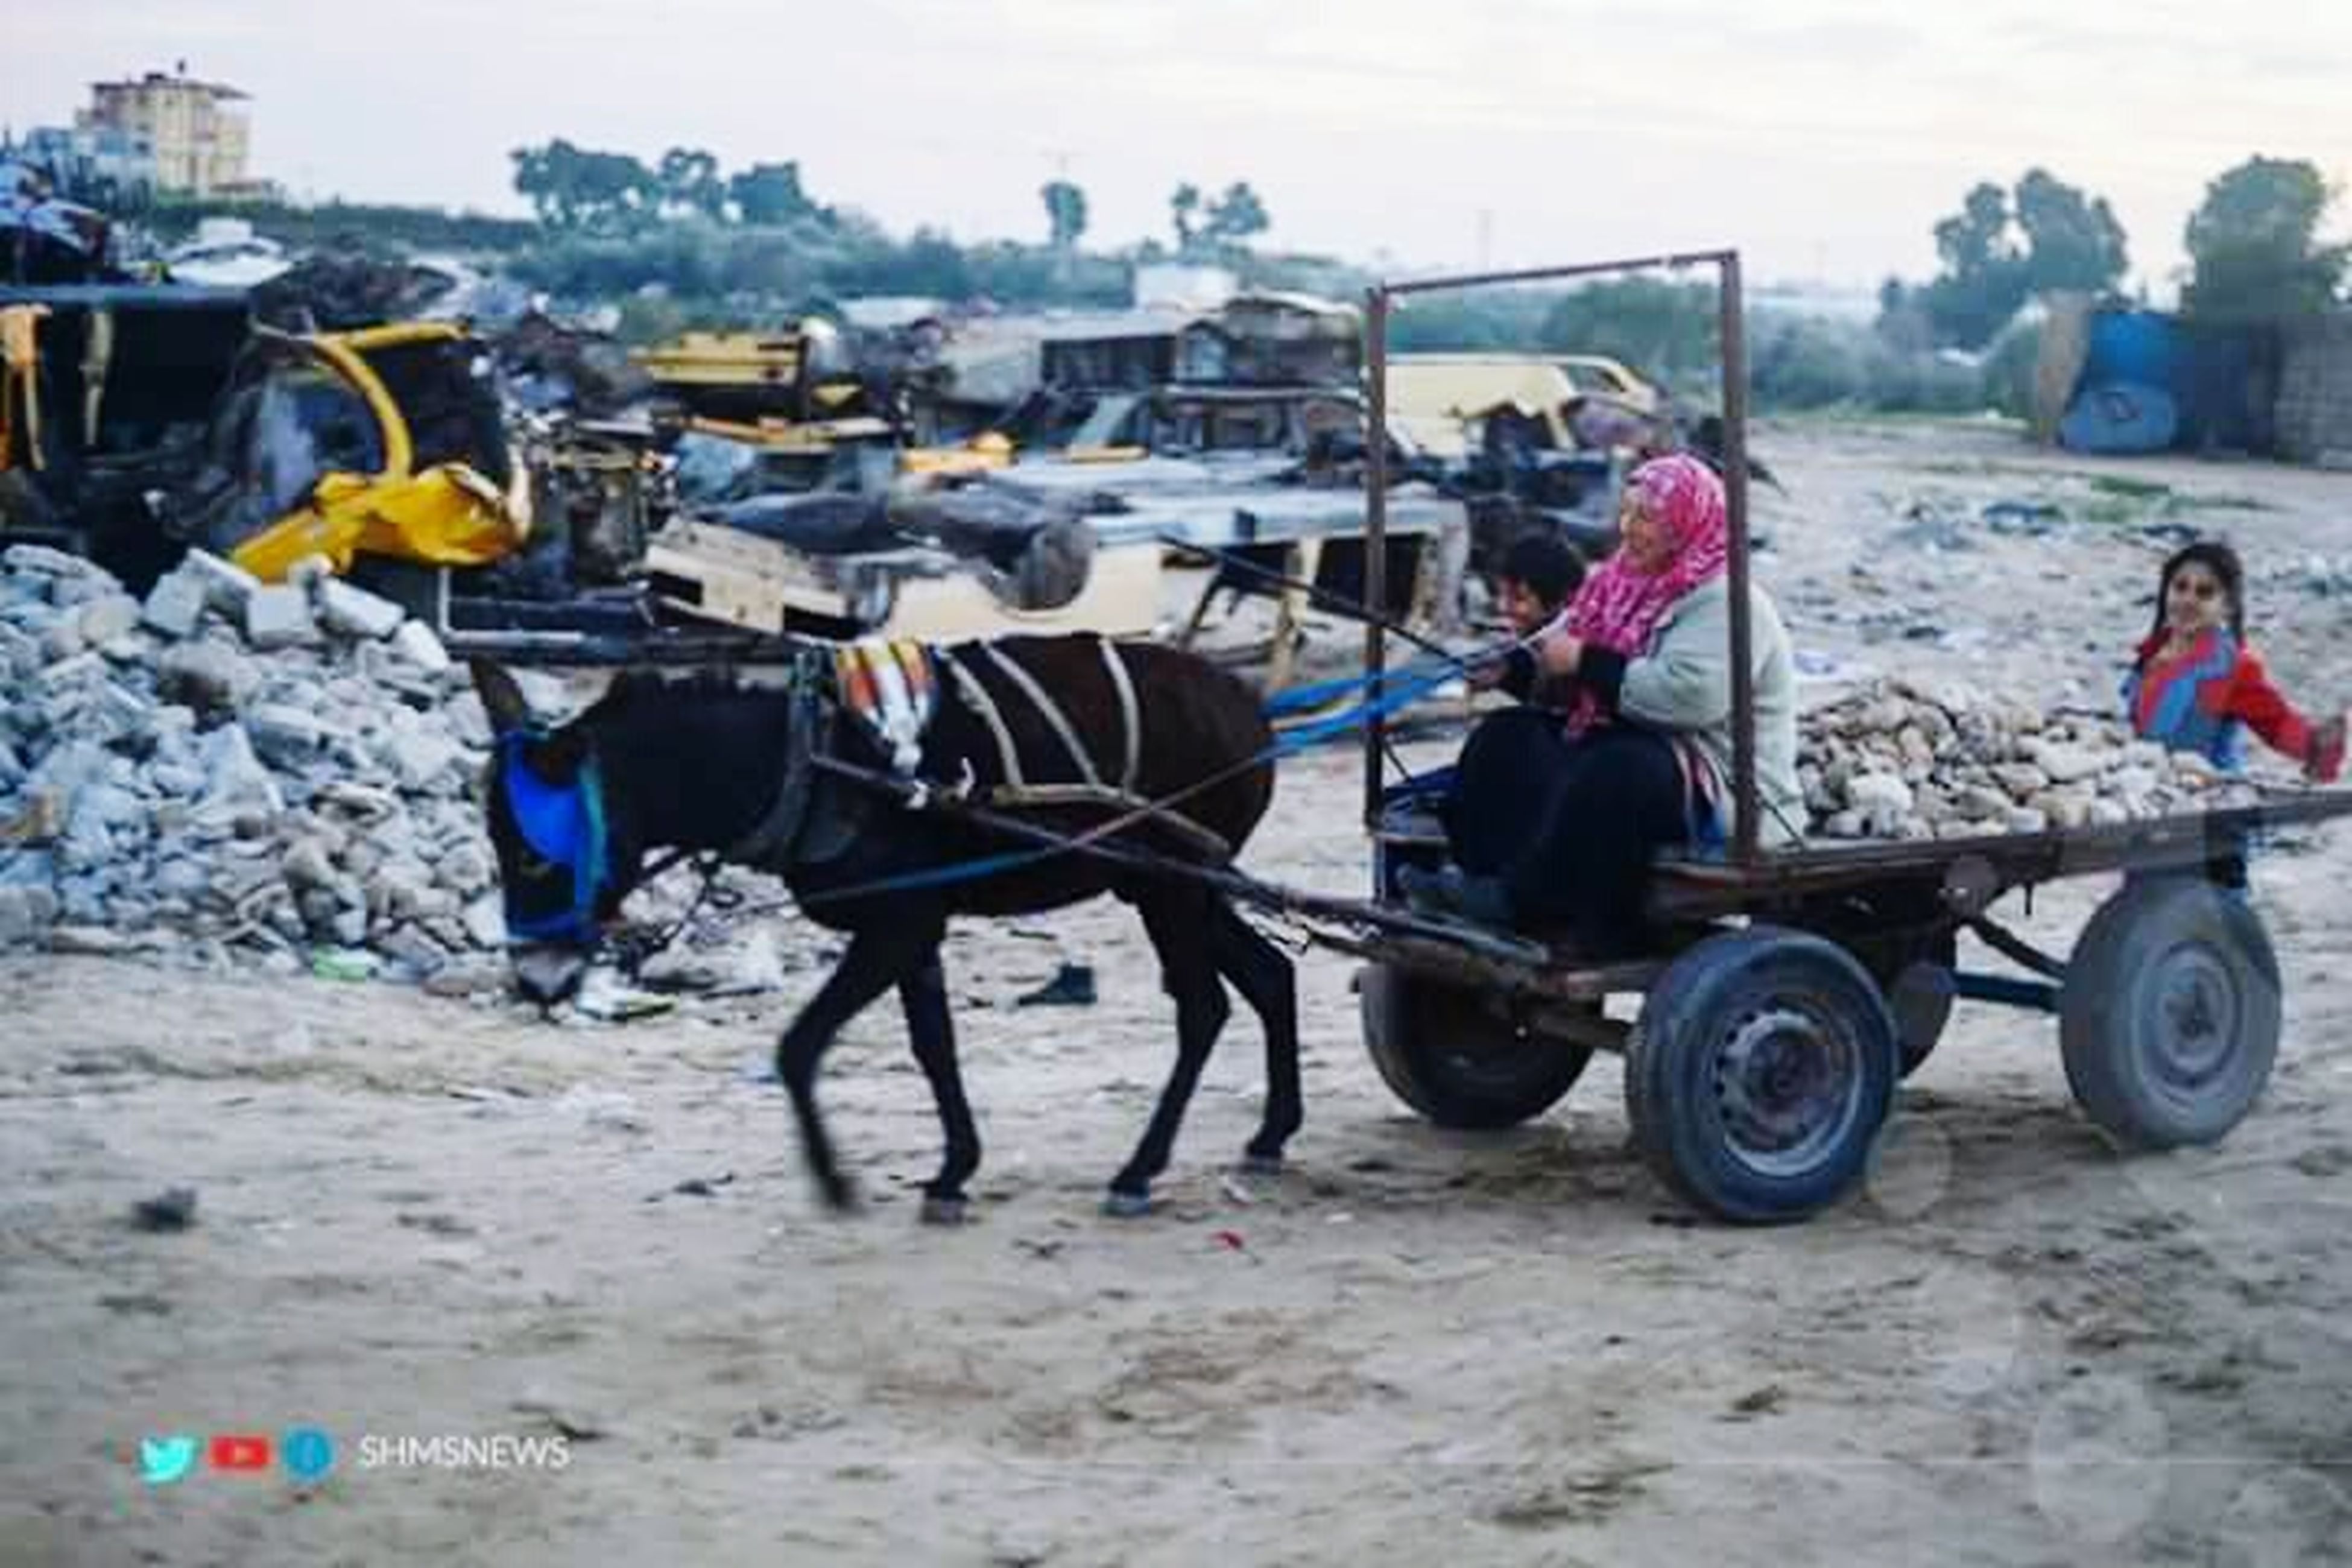 transportation, mode of transport, land vehicle, men, domestic animals, working animal, car, livestock, sky, horse, travel, day, building exterior, large group of people, animal themes, built structure, street, outdoors, person